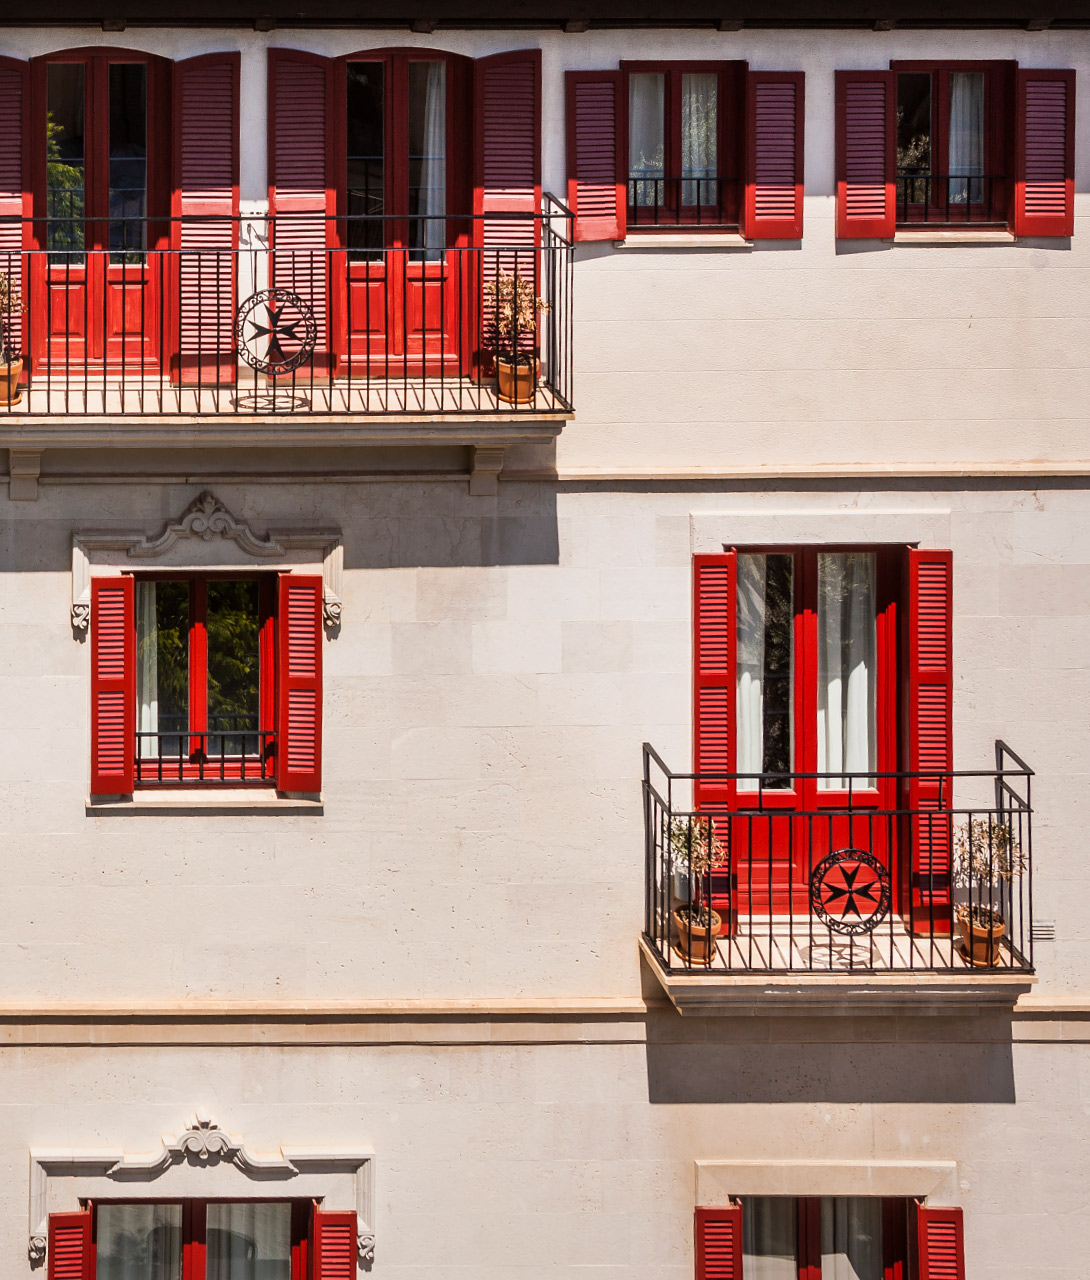 hotel-cort-facade-red-windows-k-01-x2.jpg